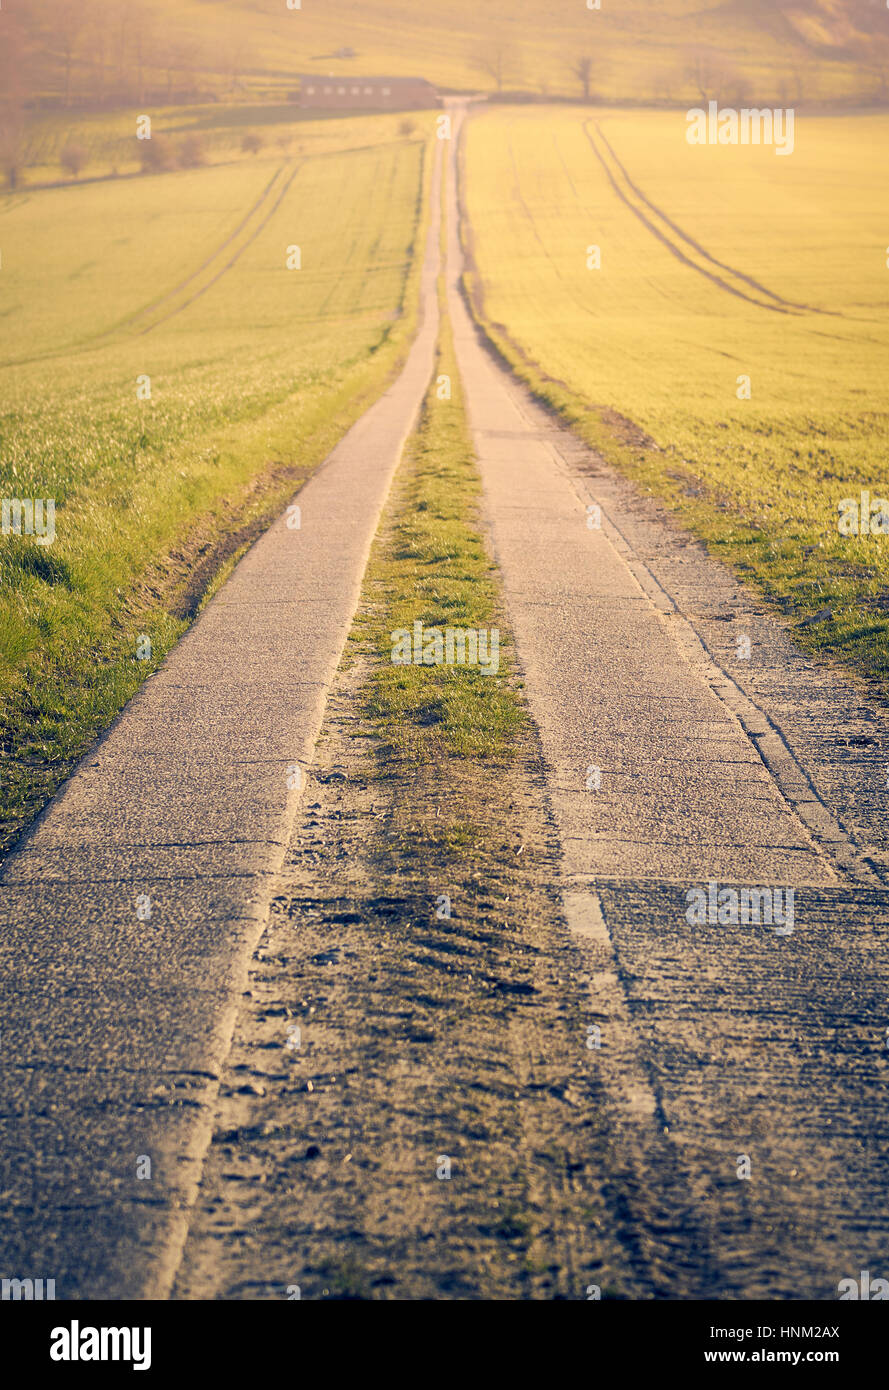 A long straight road leading to a vanishing point portrait format - Stock Image